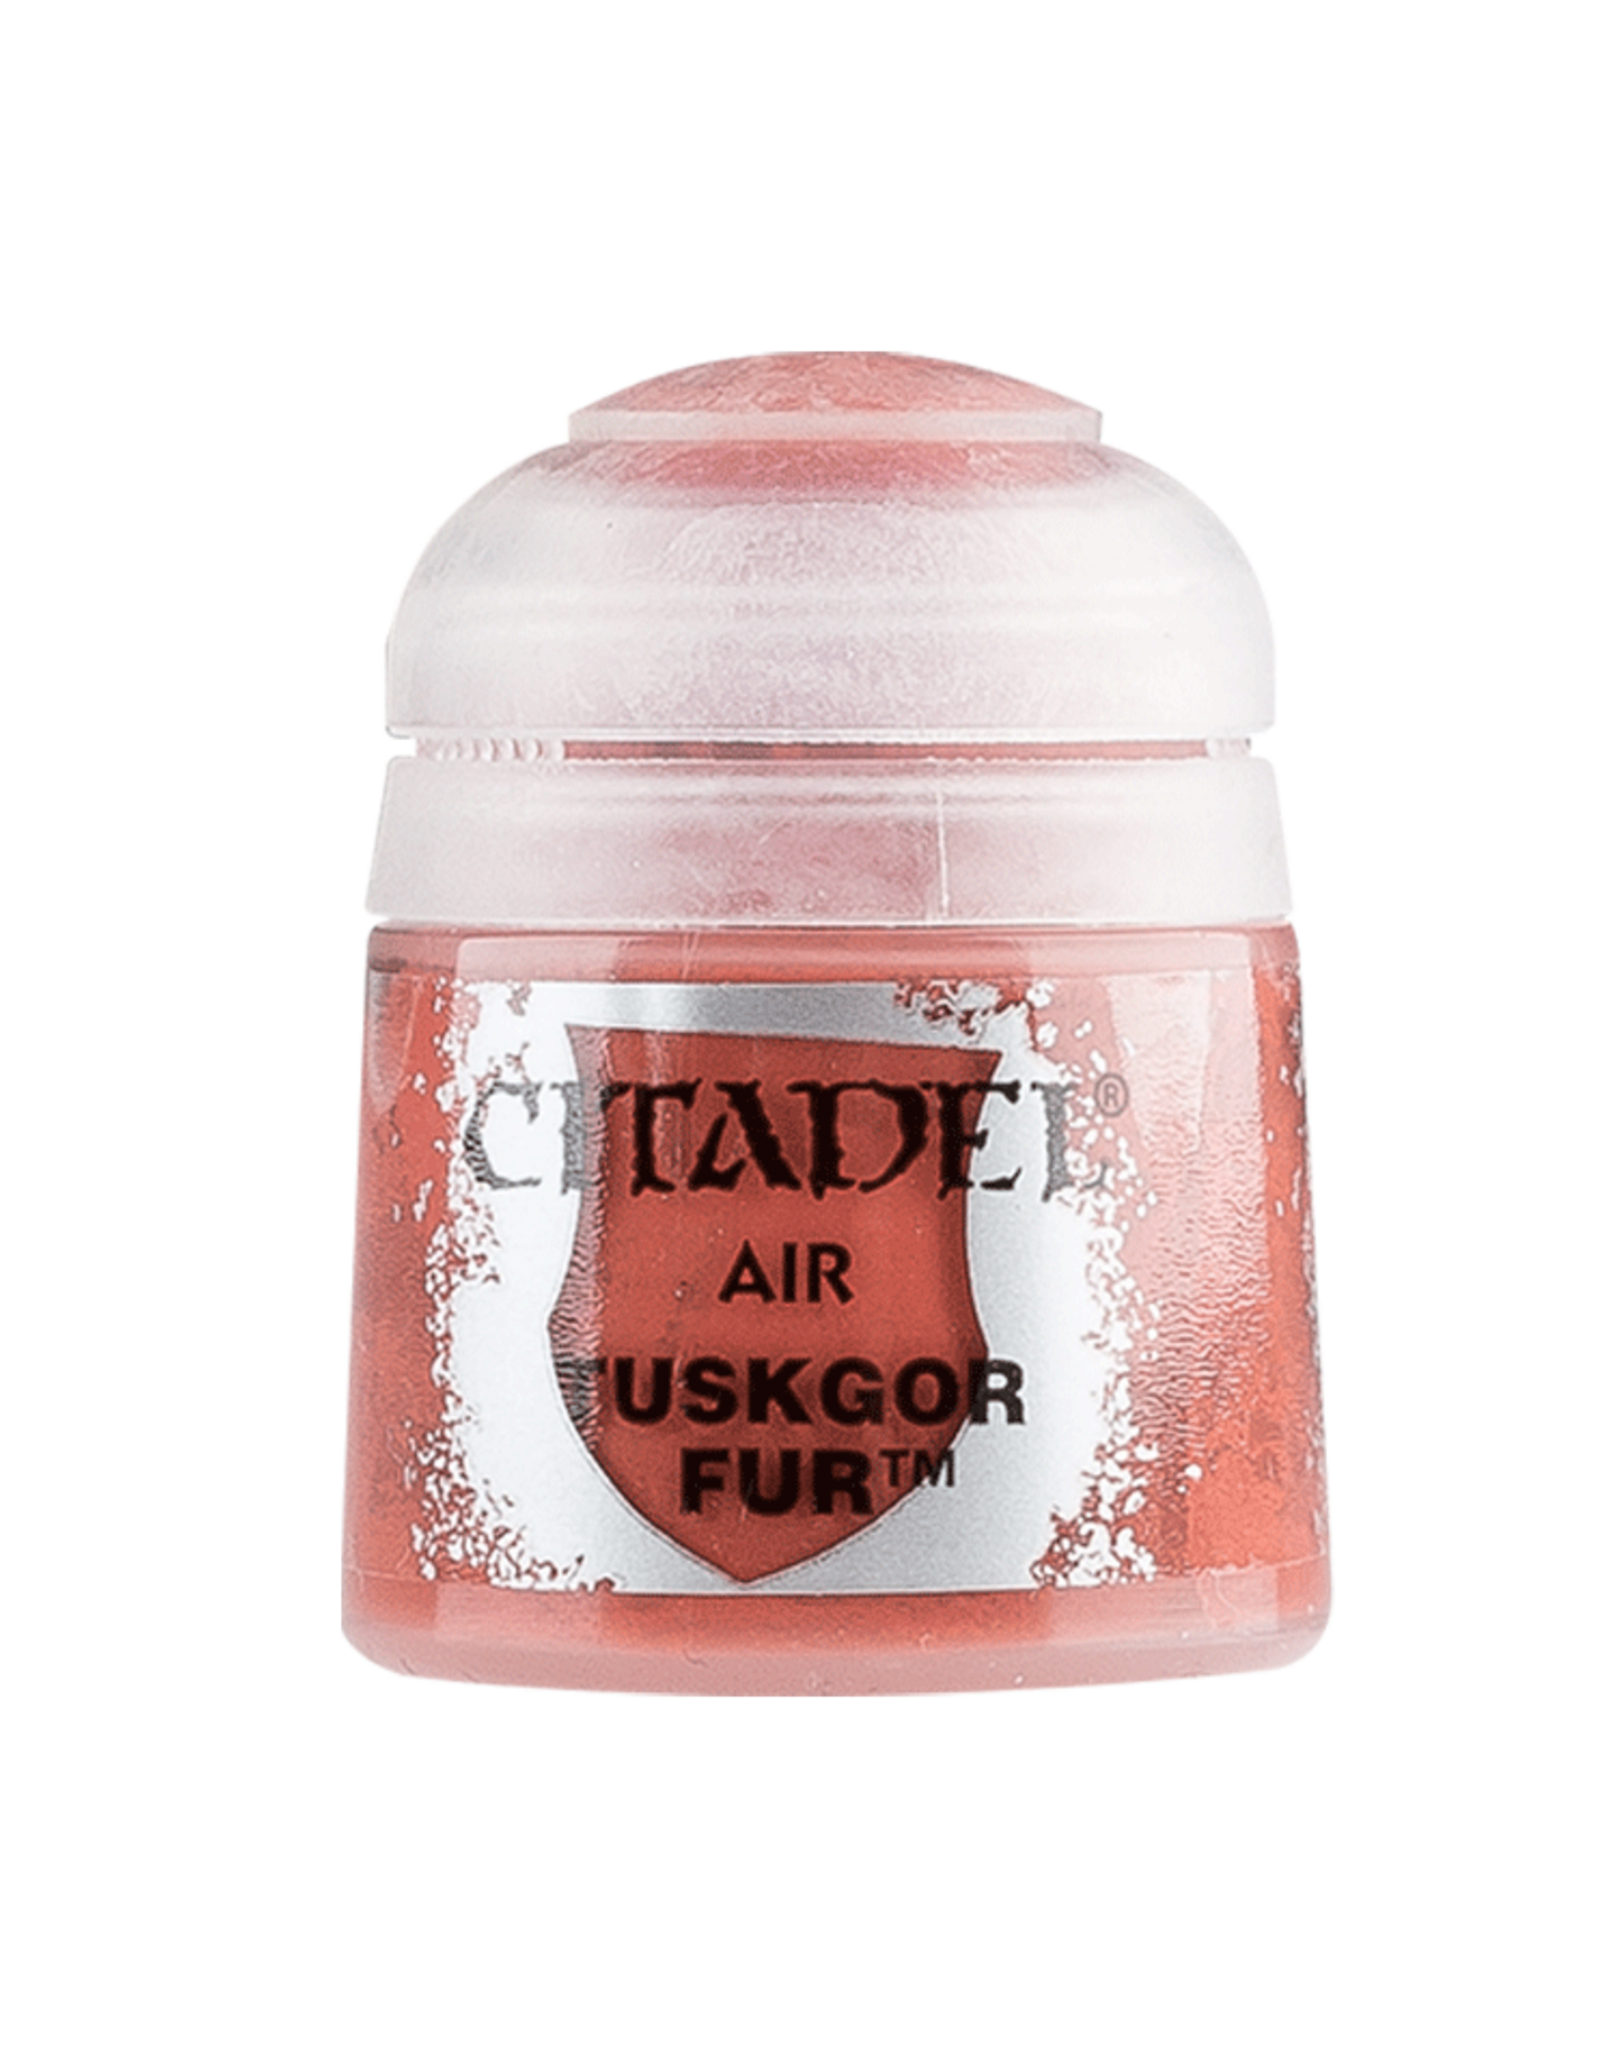 Games Workshop Citadel Air: Tuskgor Fur (24ml)